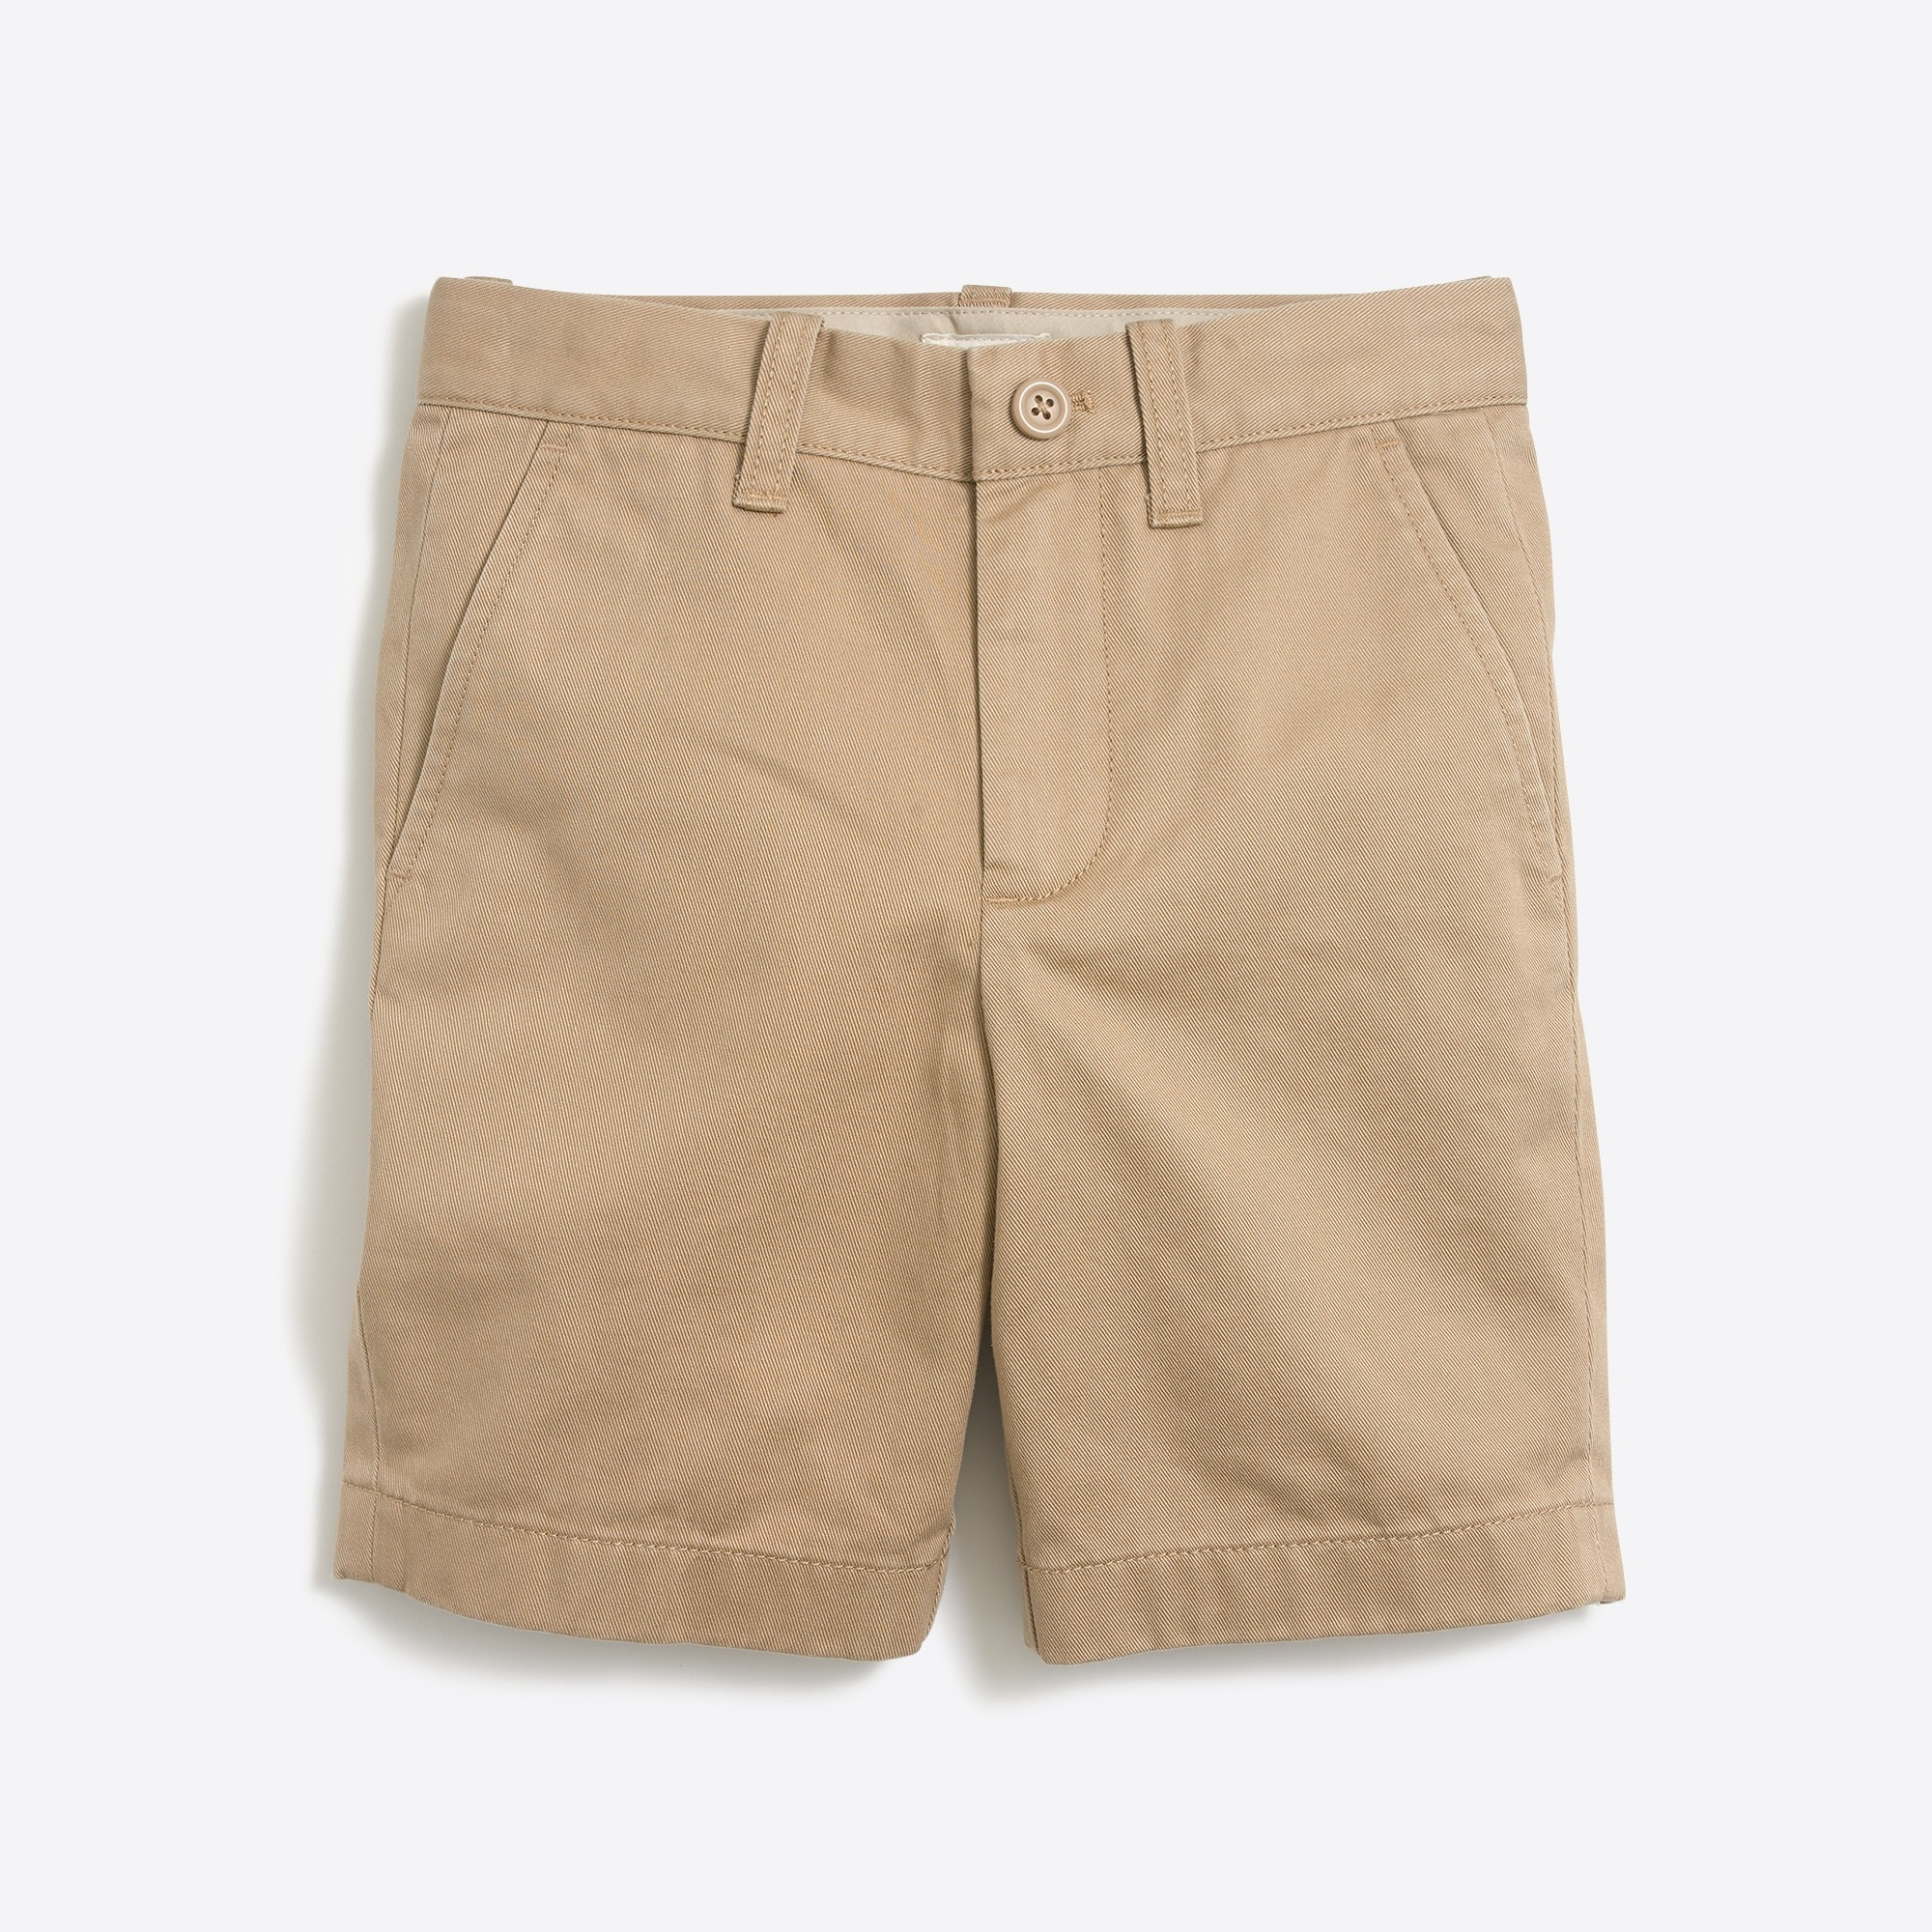 Boys' Gramercy short in chino factoryboys the camp shop c